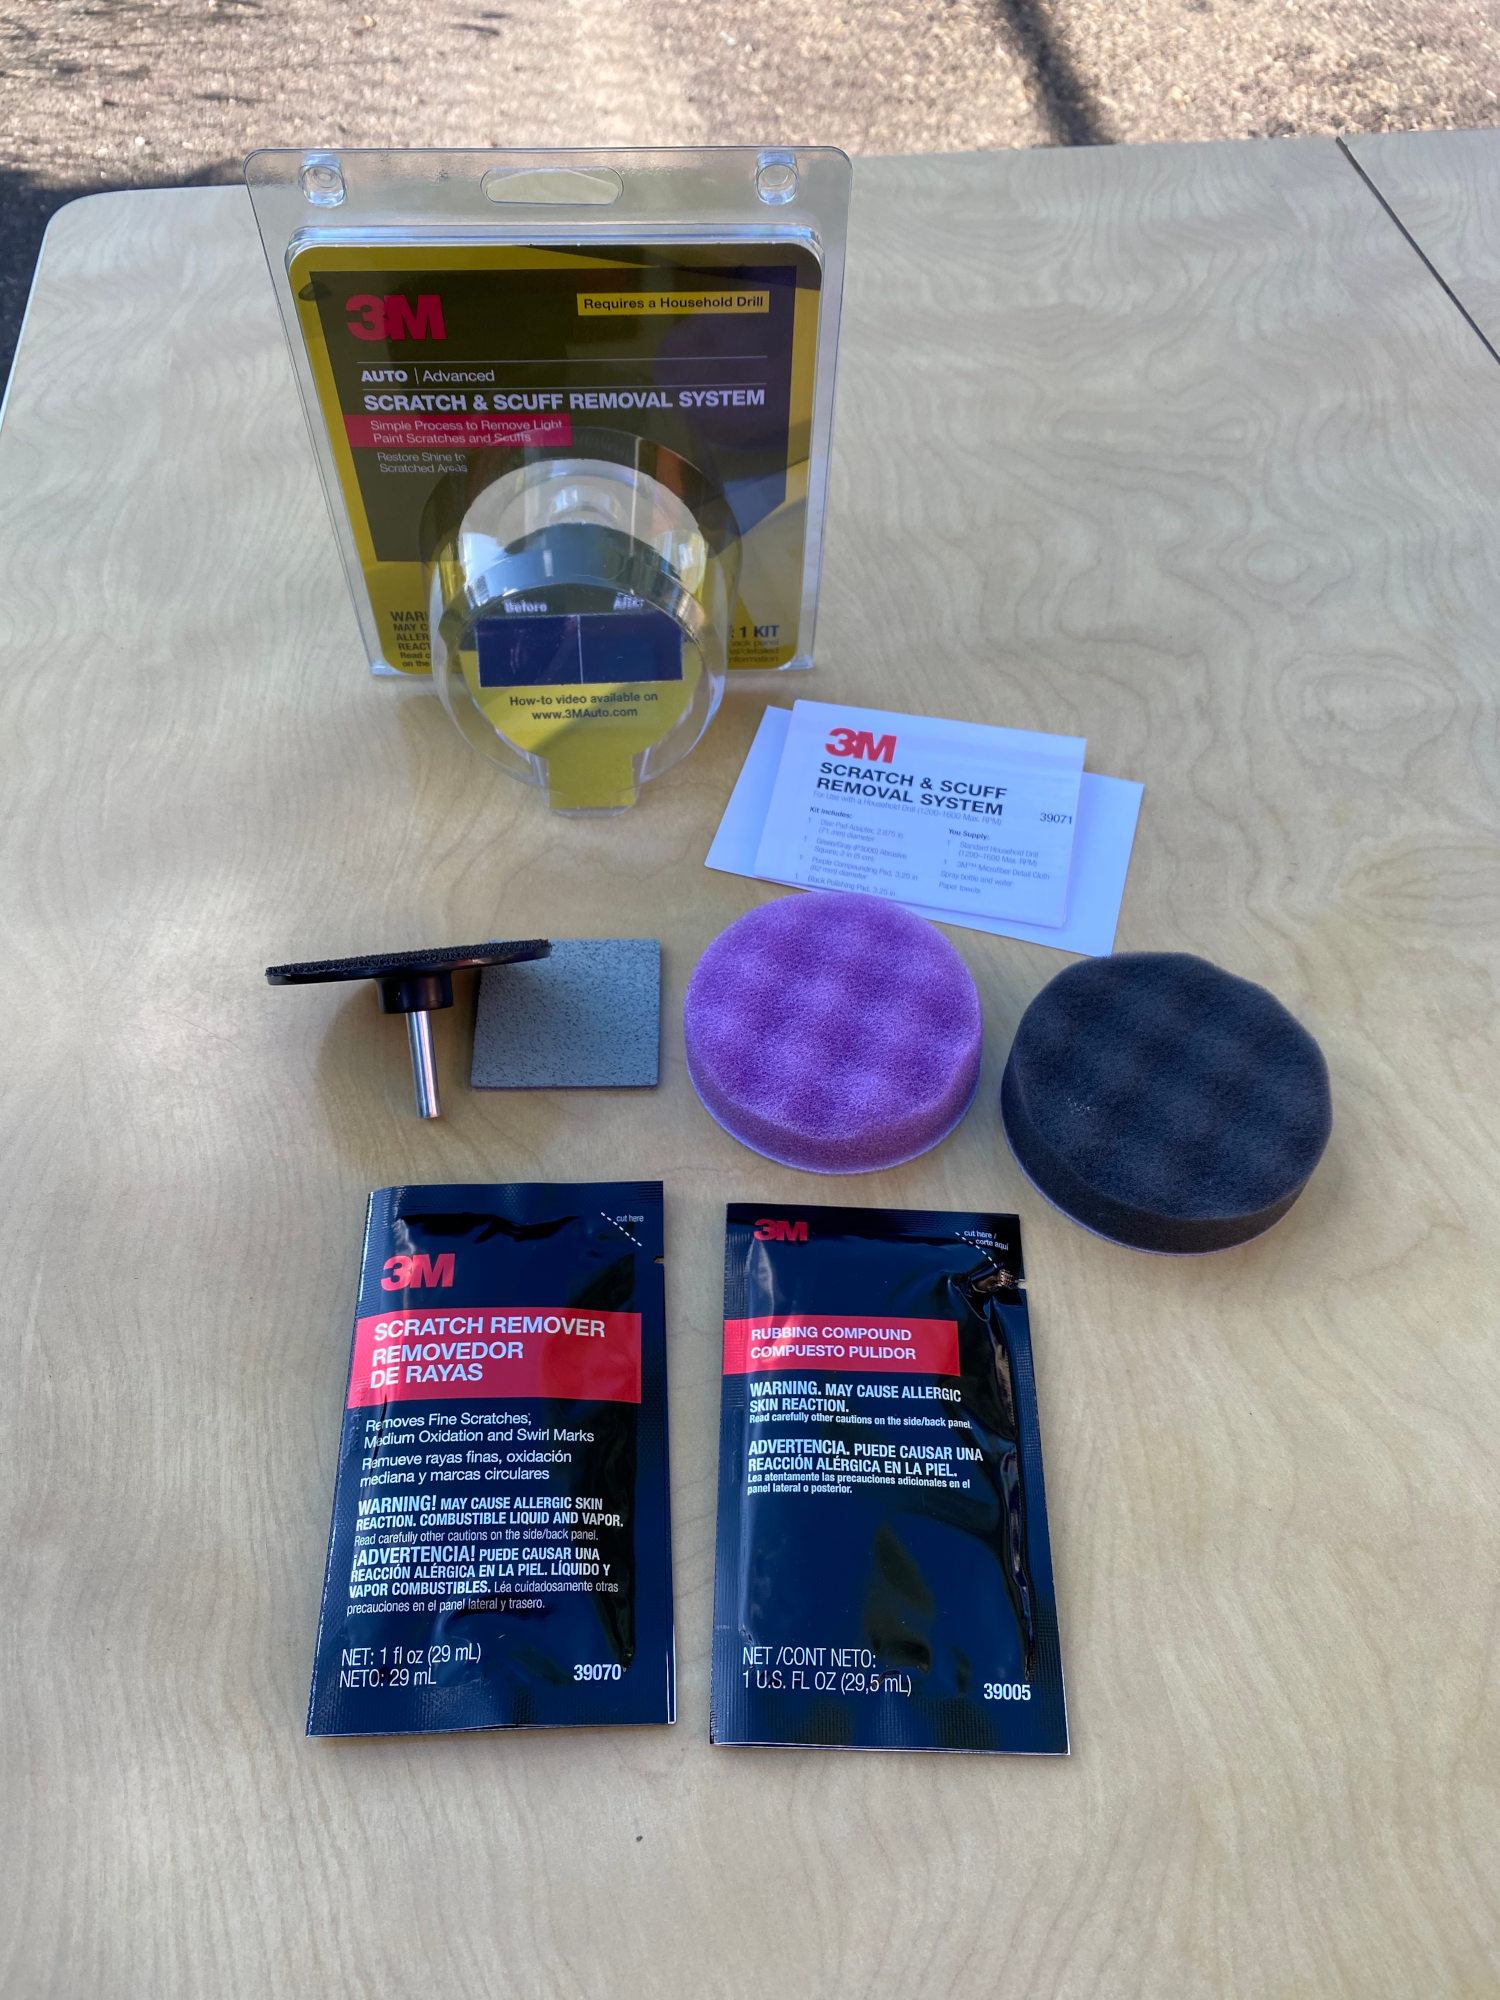 3M Scratch Removal System unboxing photo